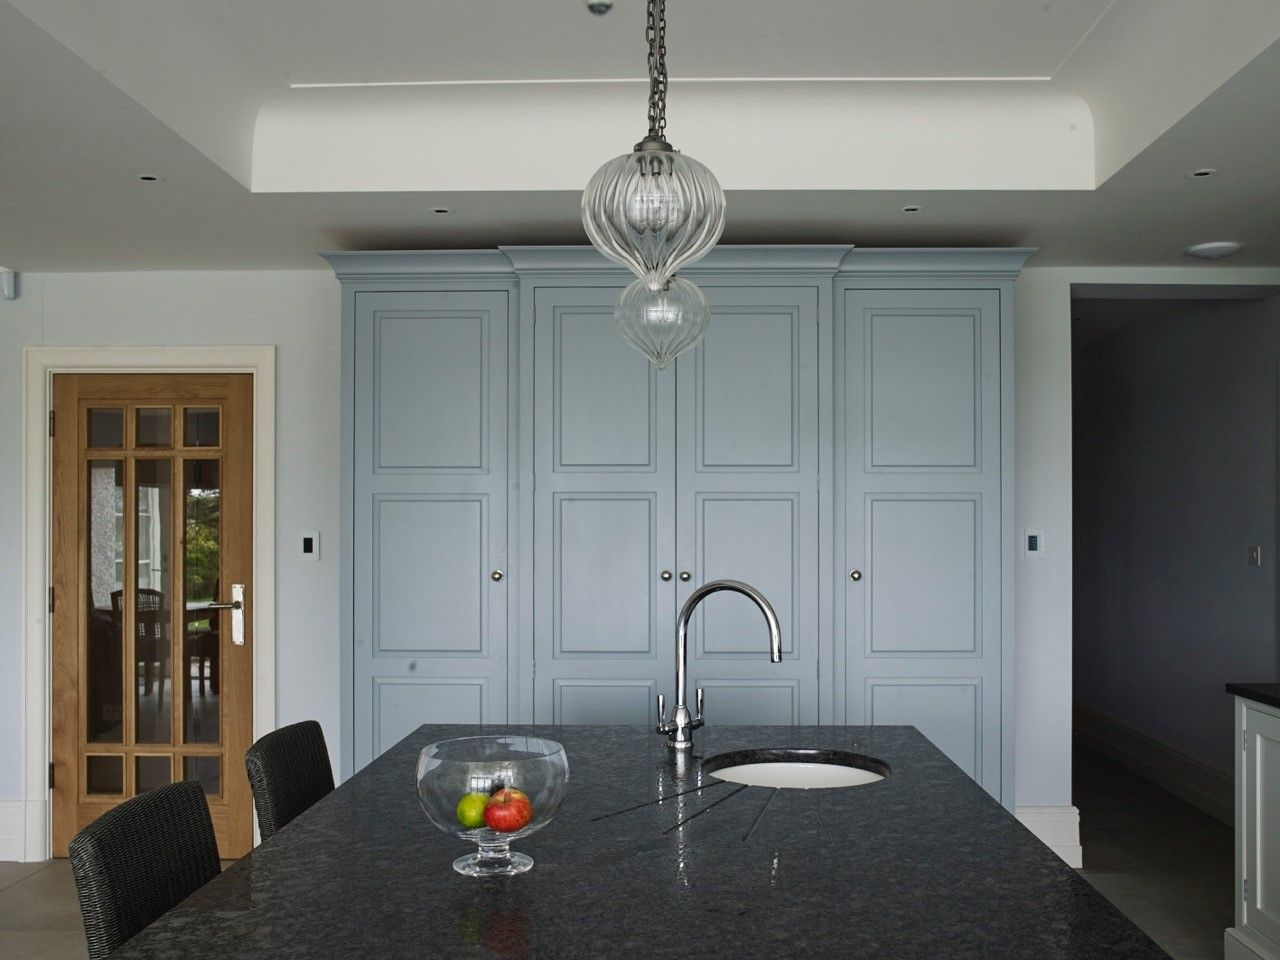 Bespoke kitchen Cheshire Cabinet Makers Luxury Quality Hand made ...